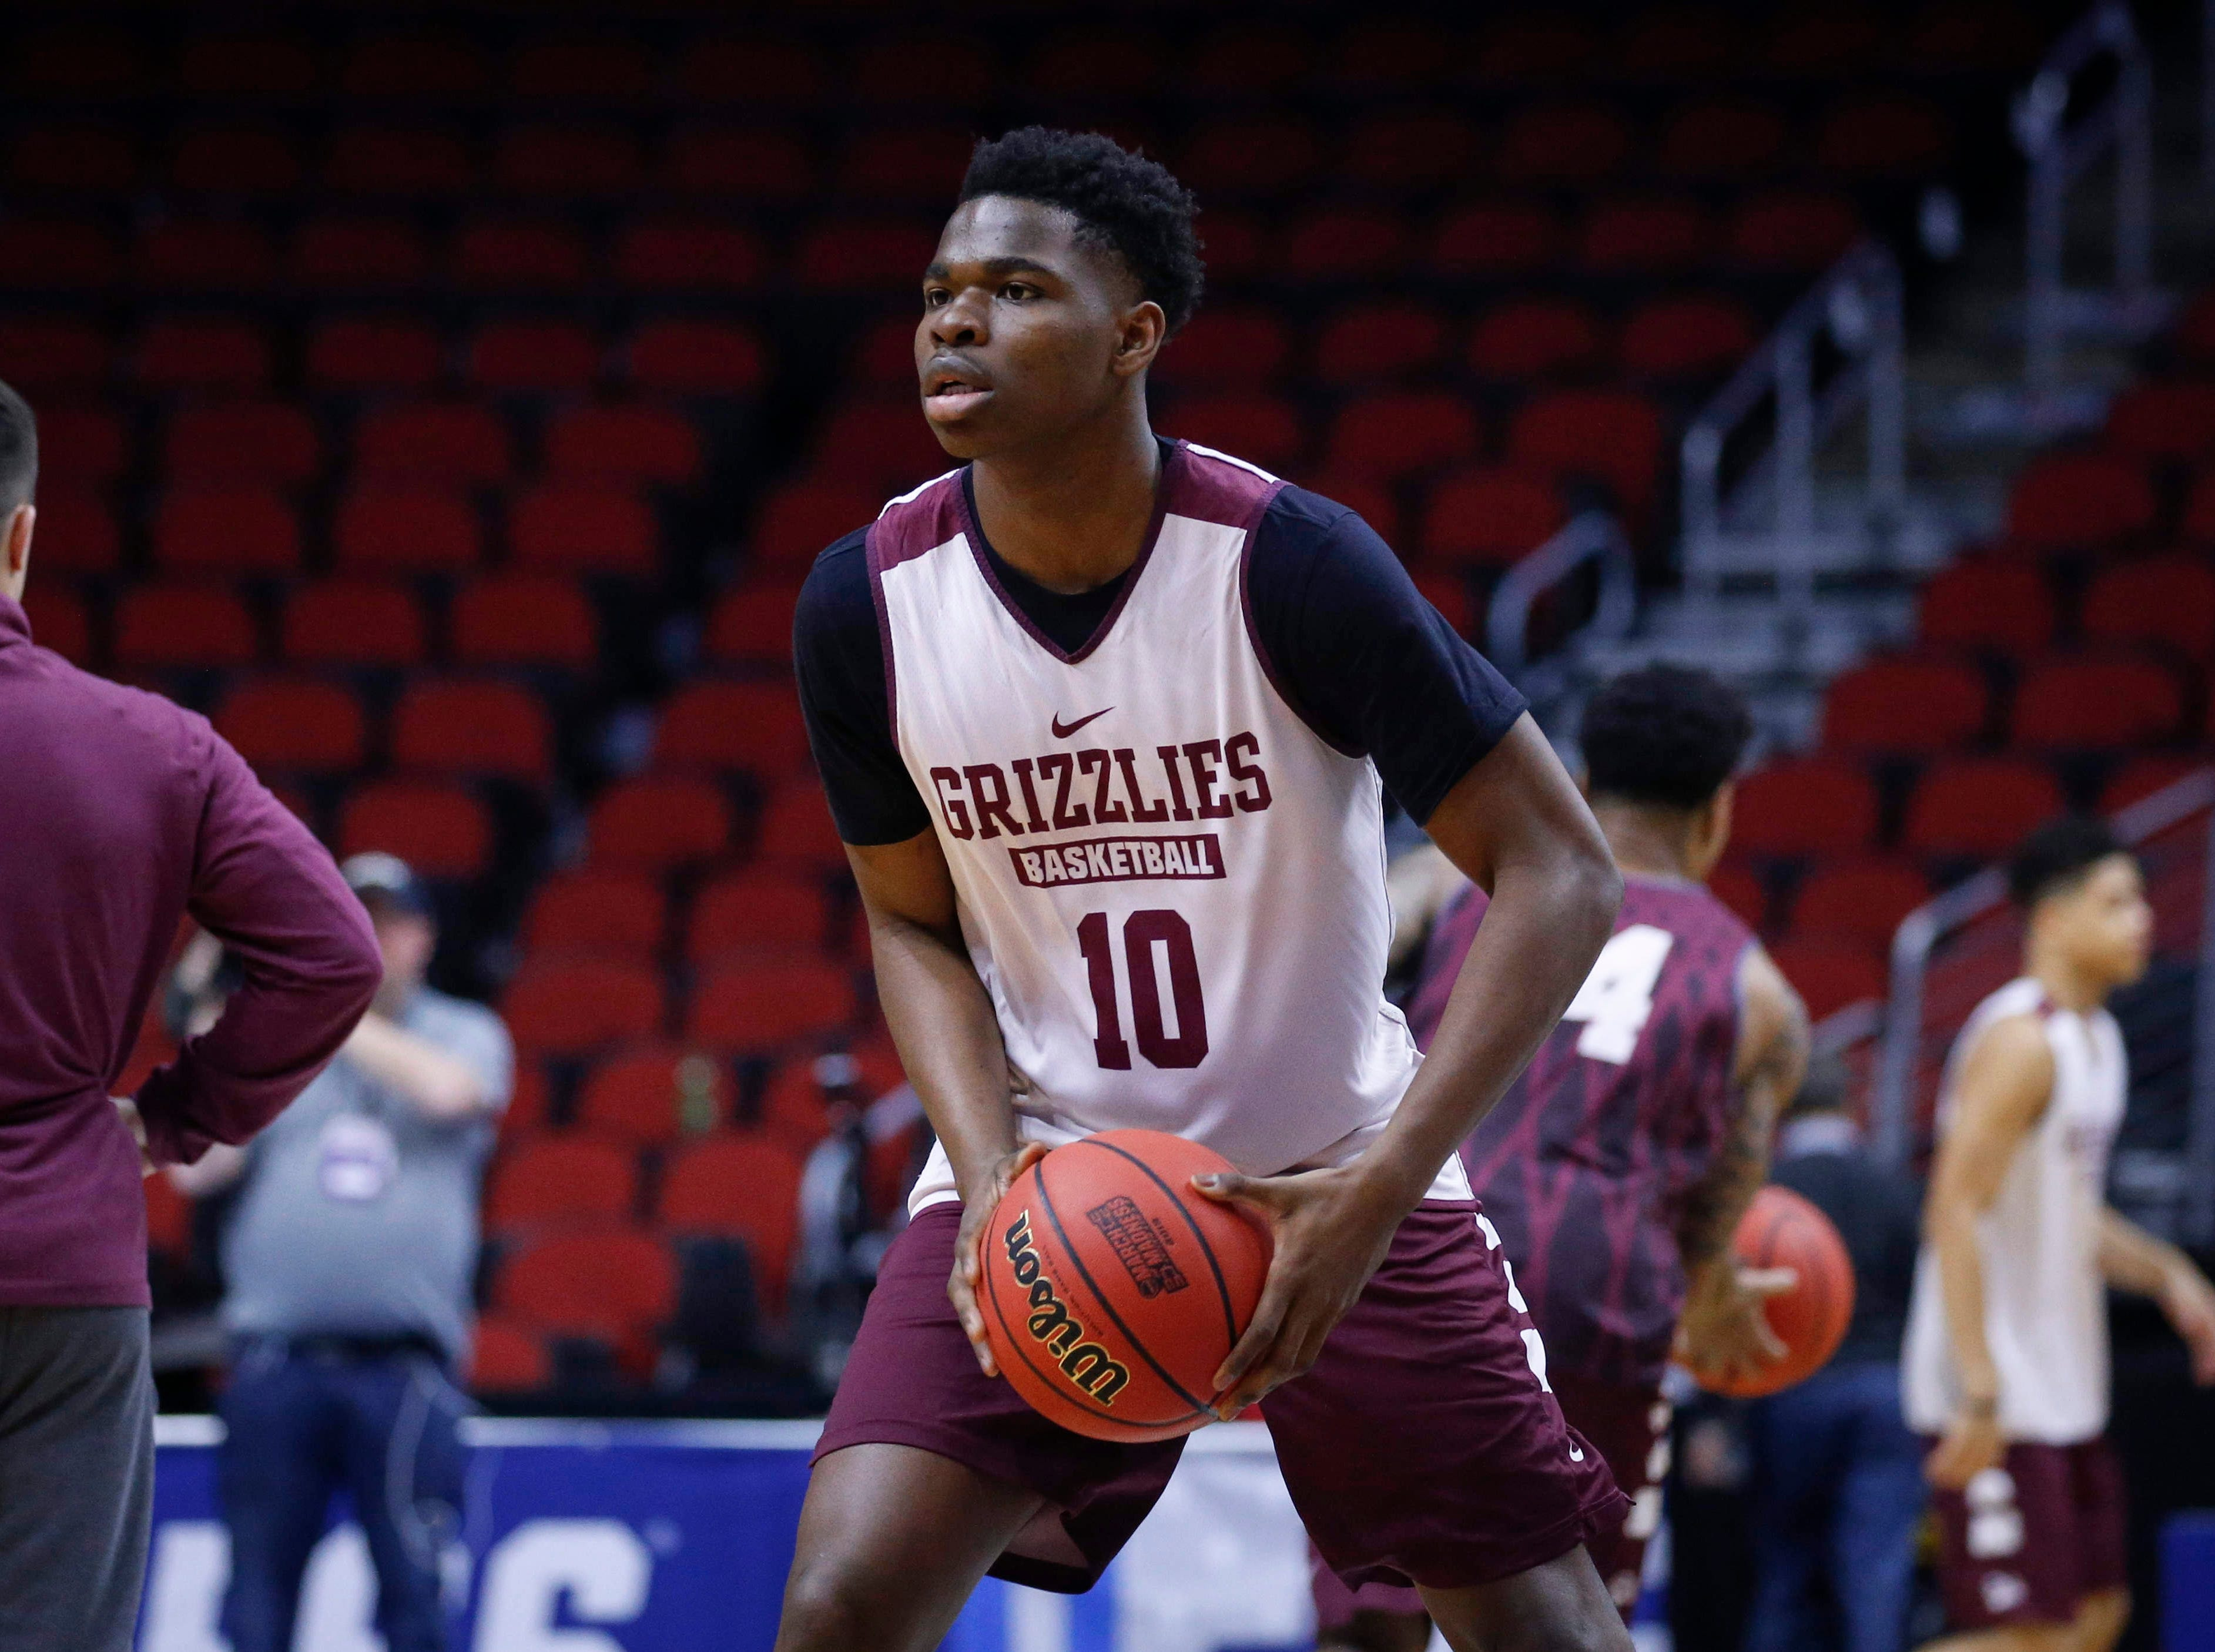 Montana freshman Eddy Egun runs a passing drill during open practice on Wednesday, March 20, 2019, at Wells Fargo Arena in Des Moines, Iowa.